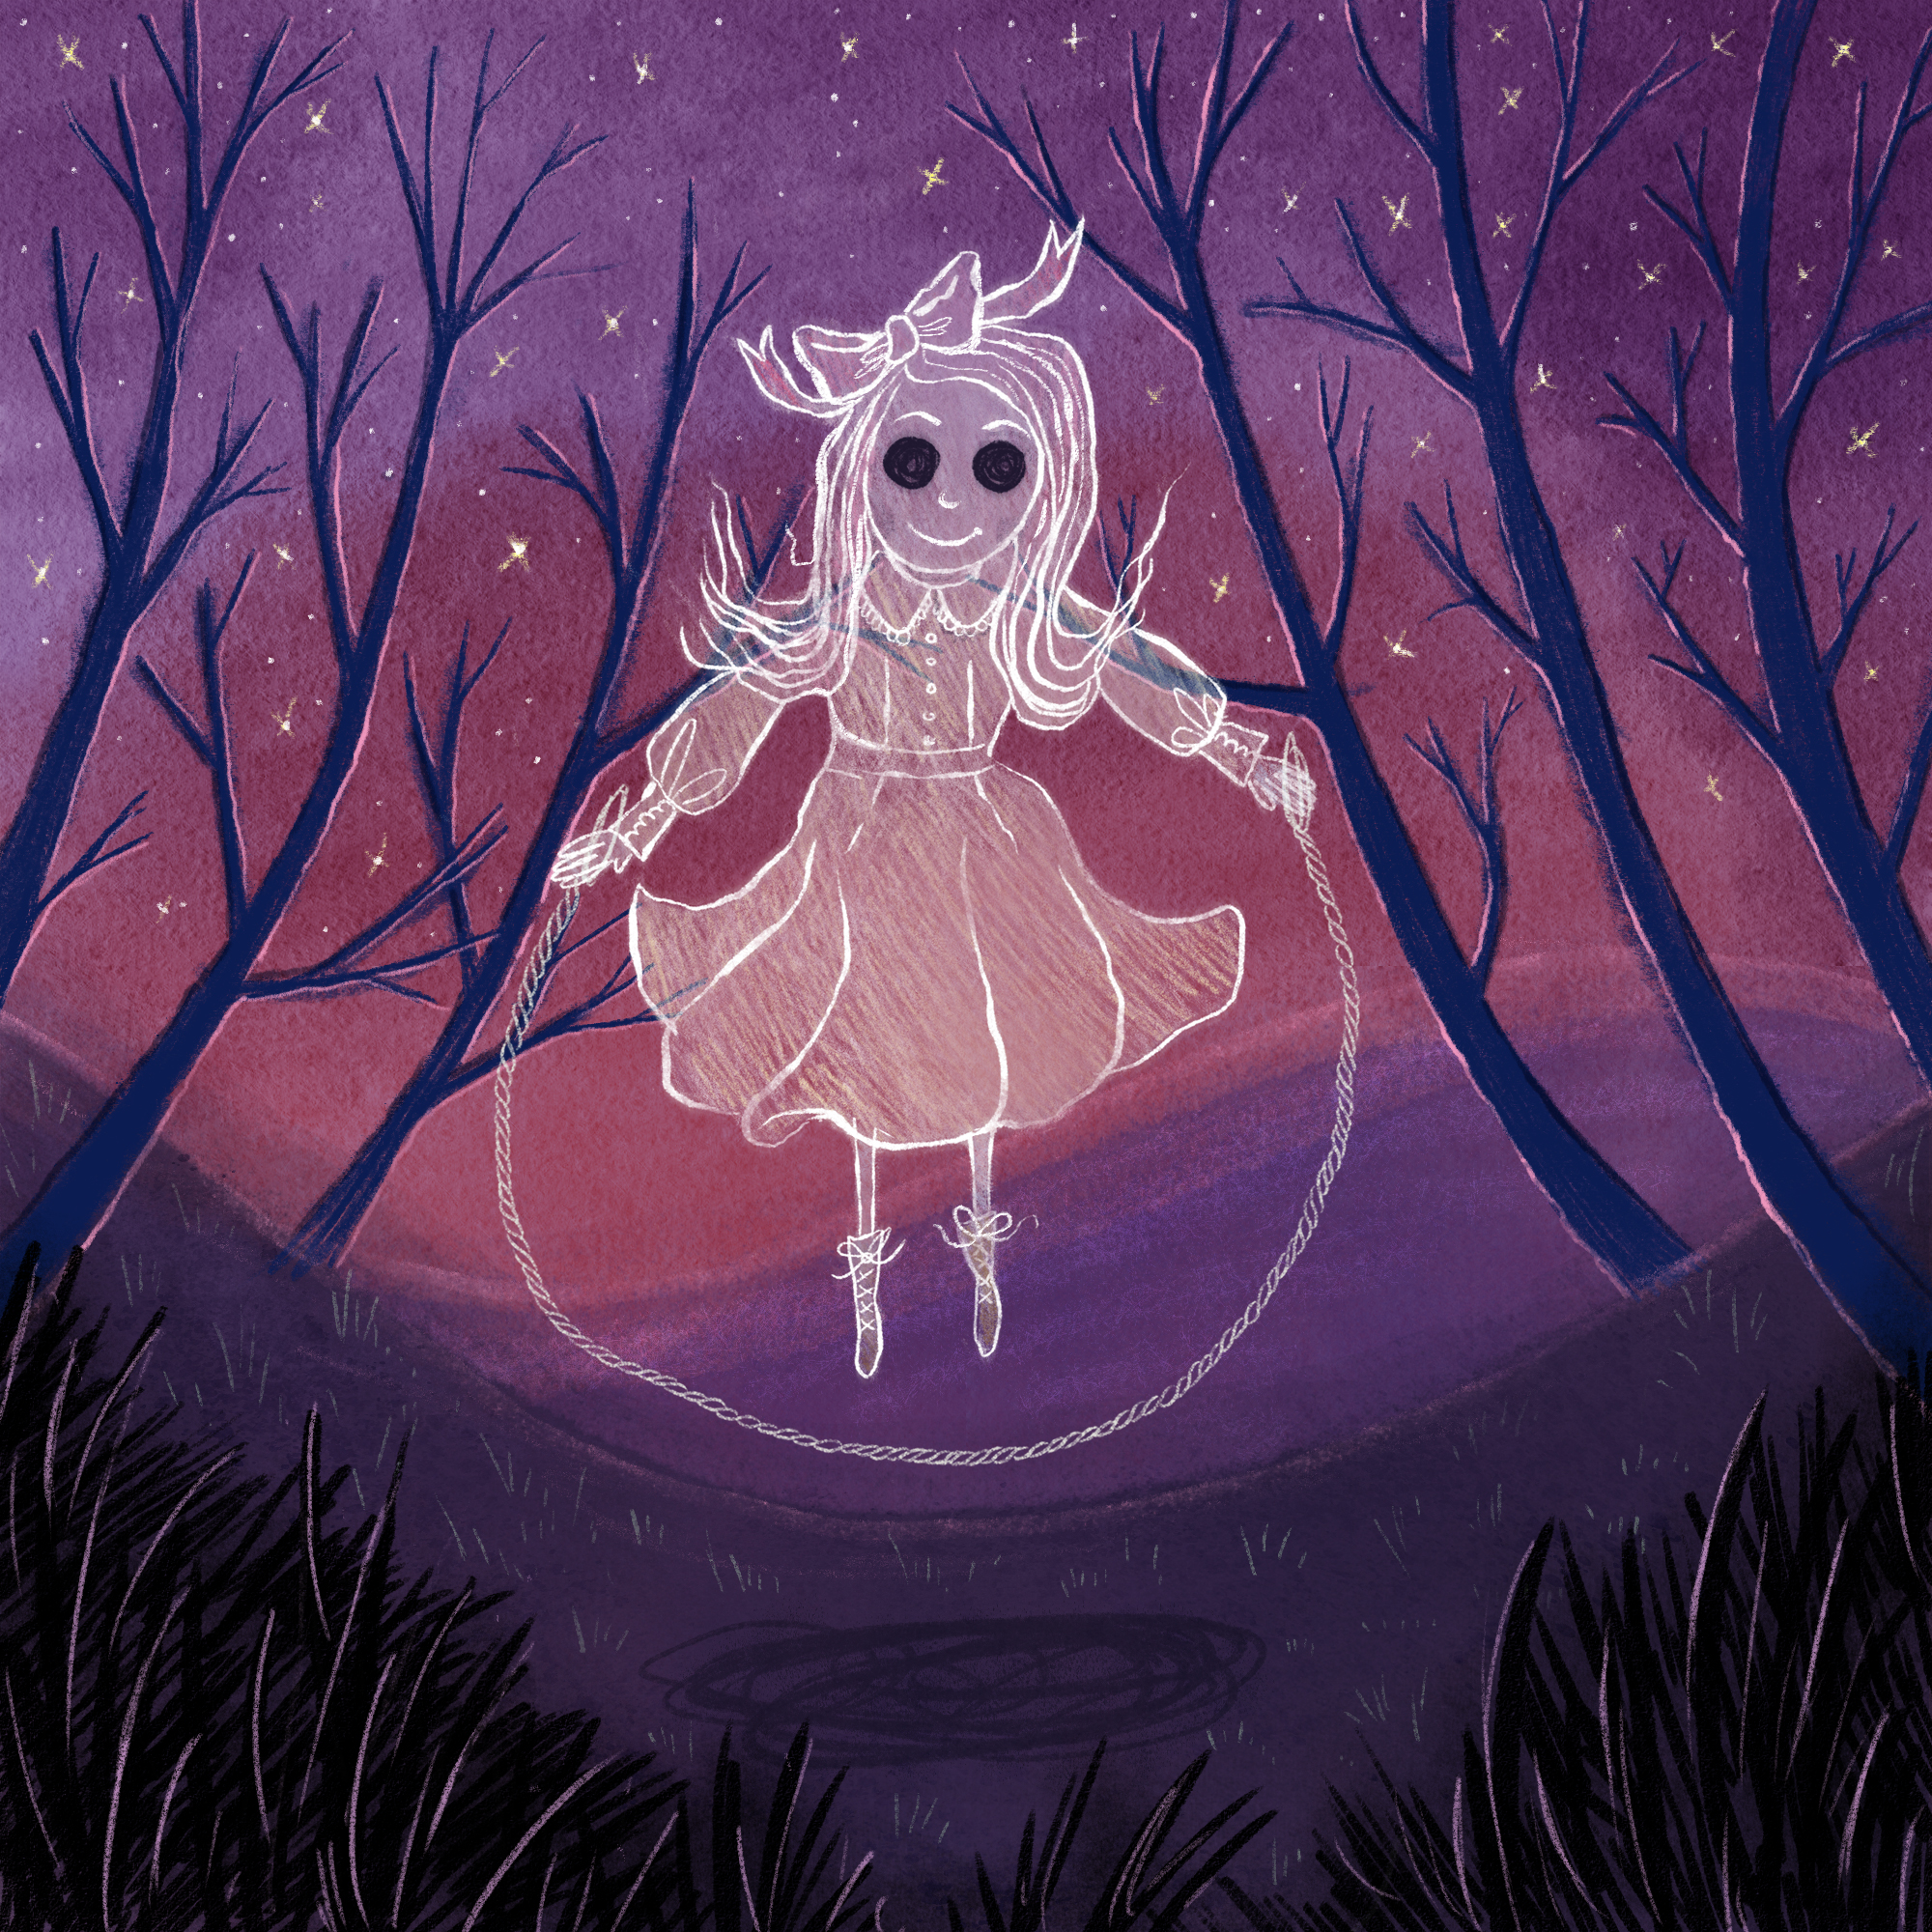 folktale-forest-ghost.jpg